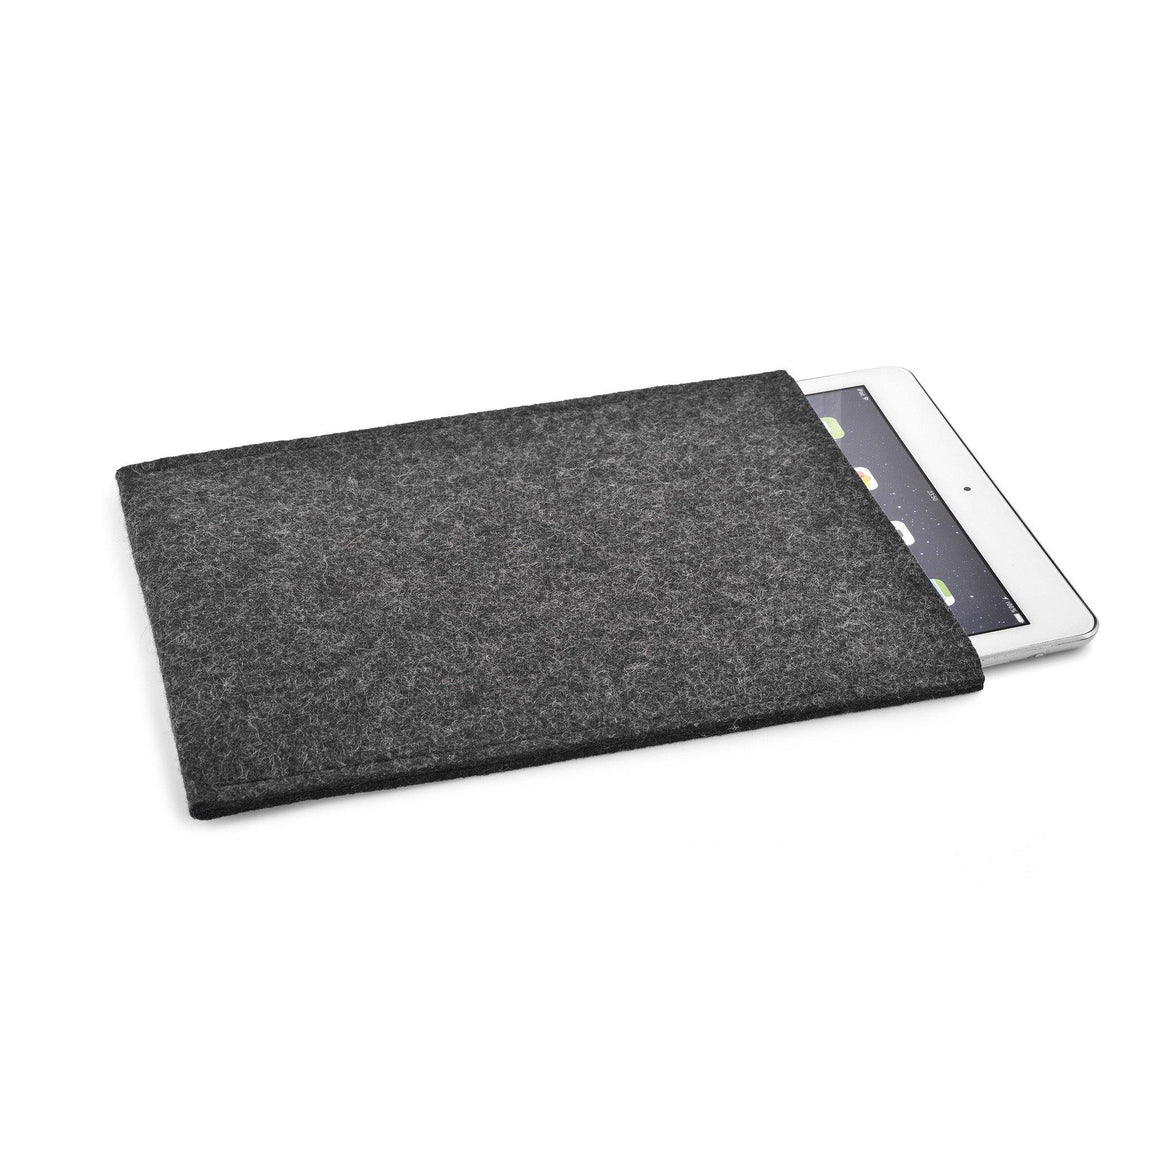 iPad Wool Felt Cover Charcoal Portrait - Wrappers UK